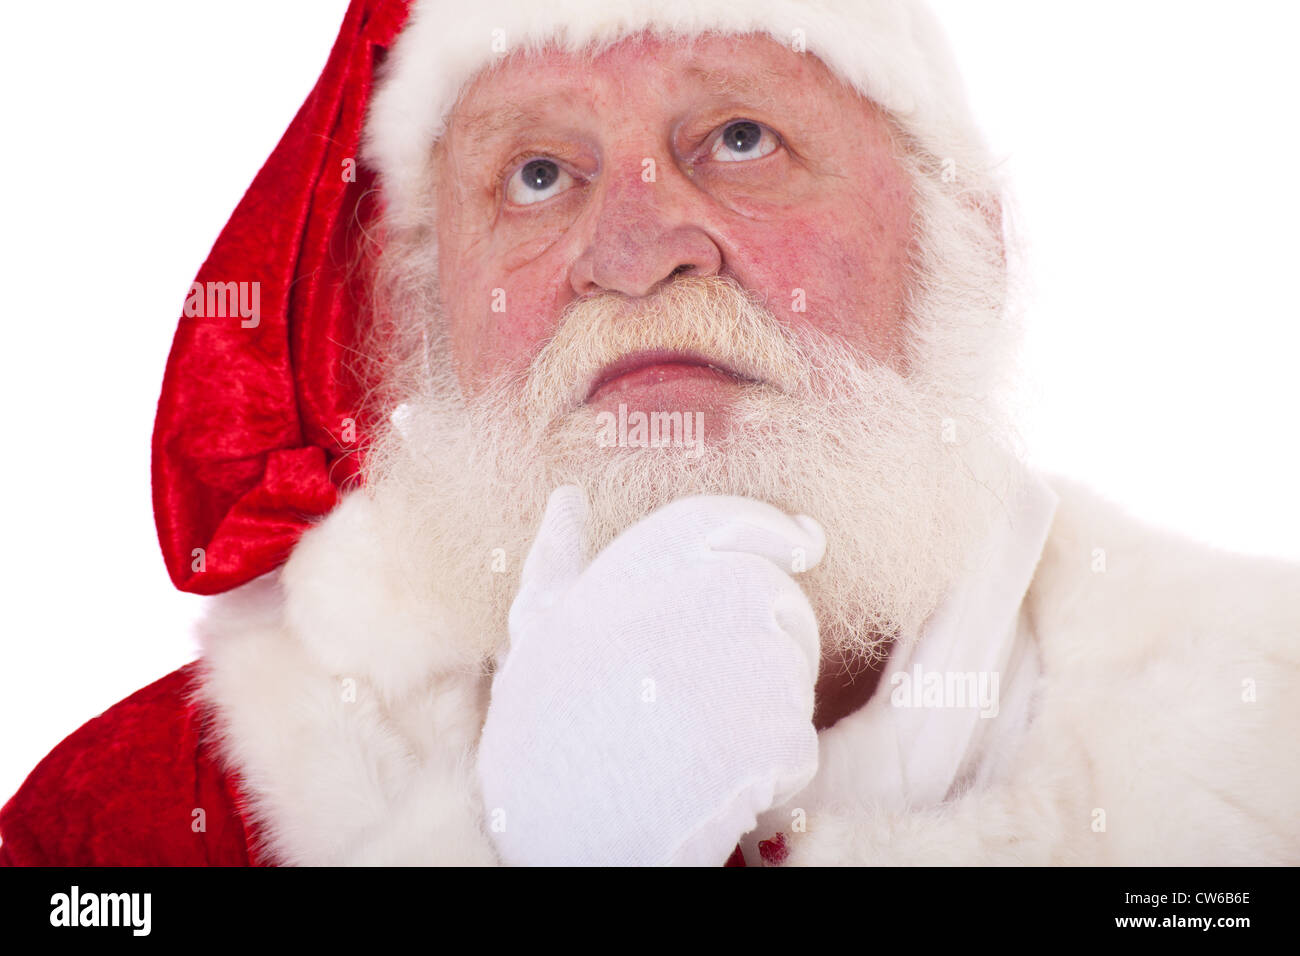 Portrait of Santa Claus deliberating a decision. All on white background. - Stock Image